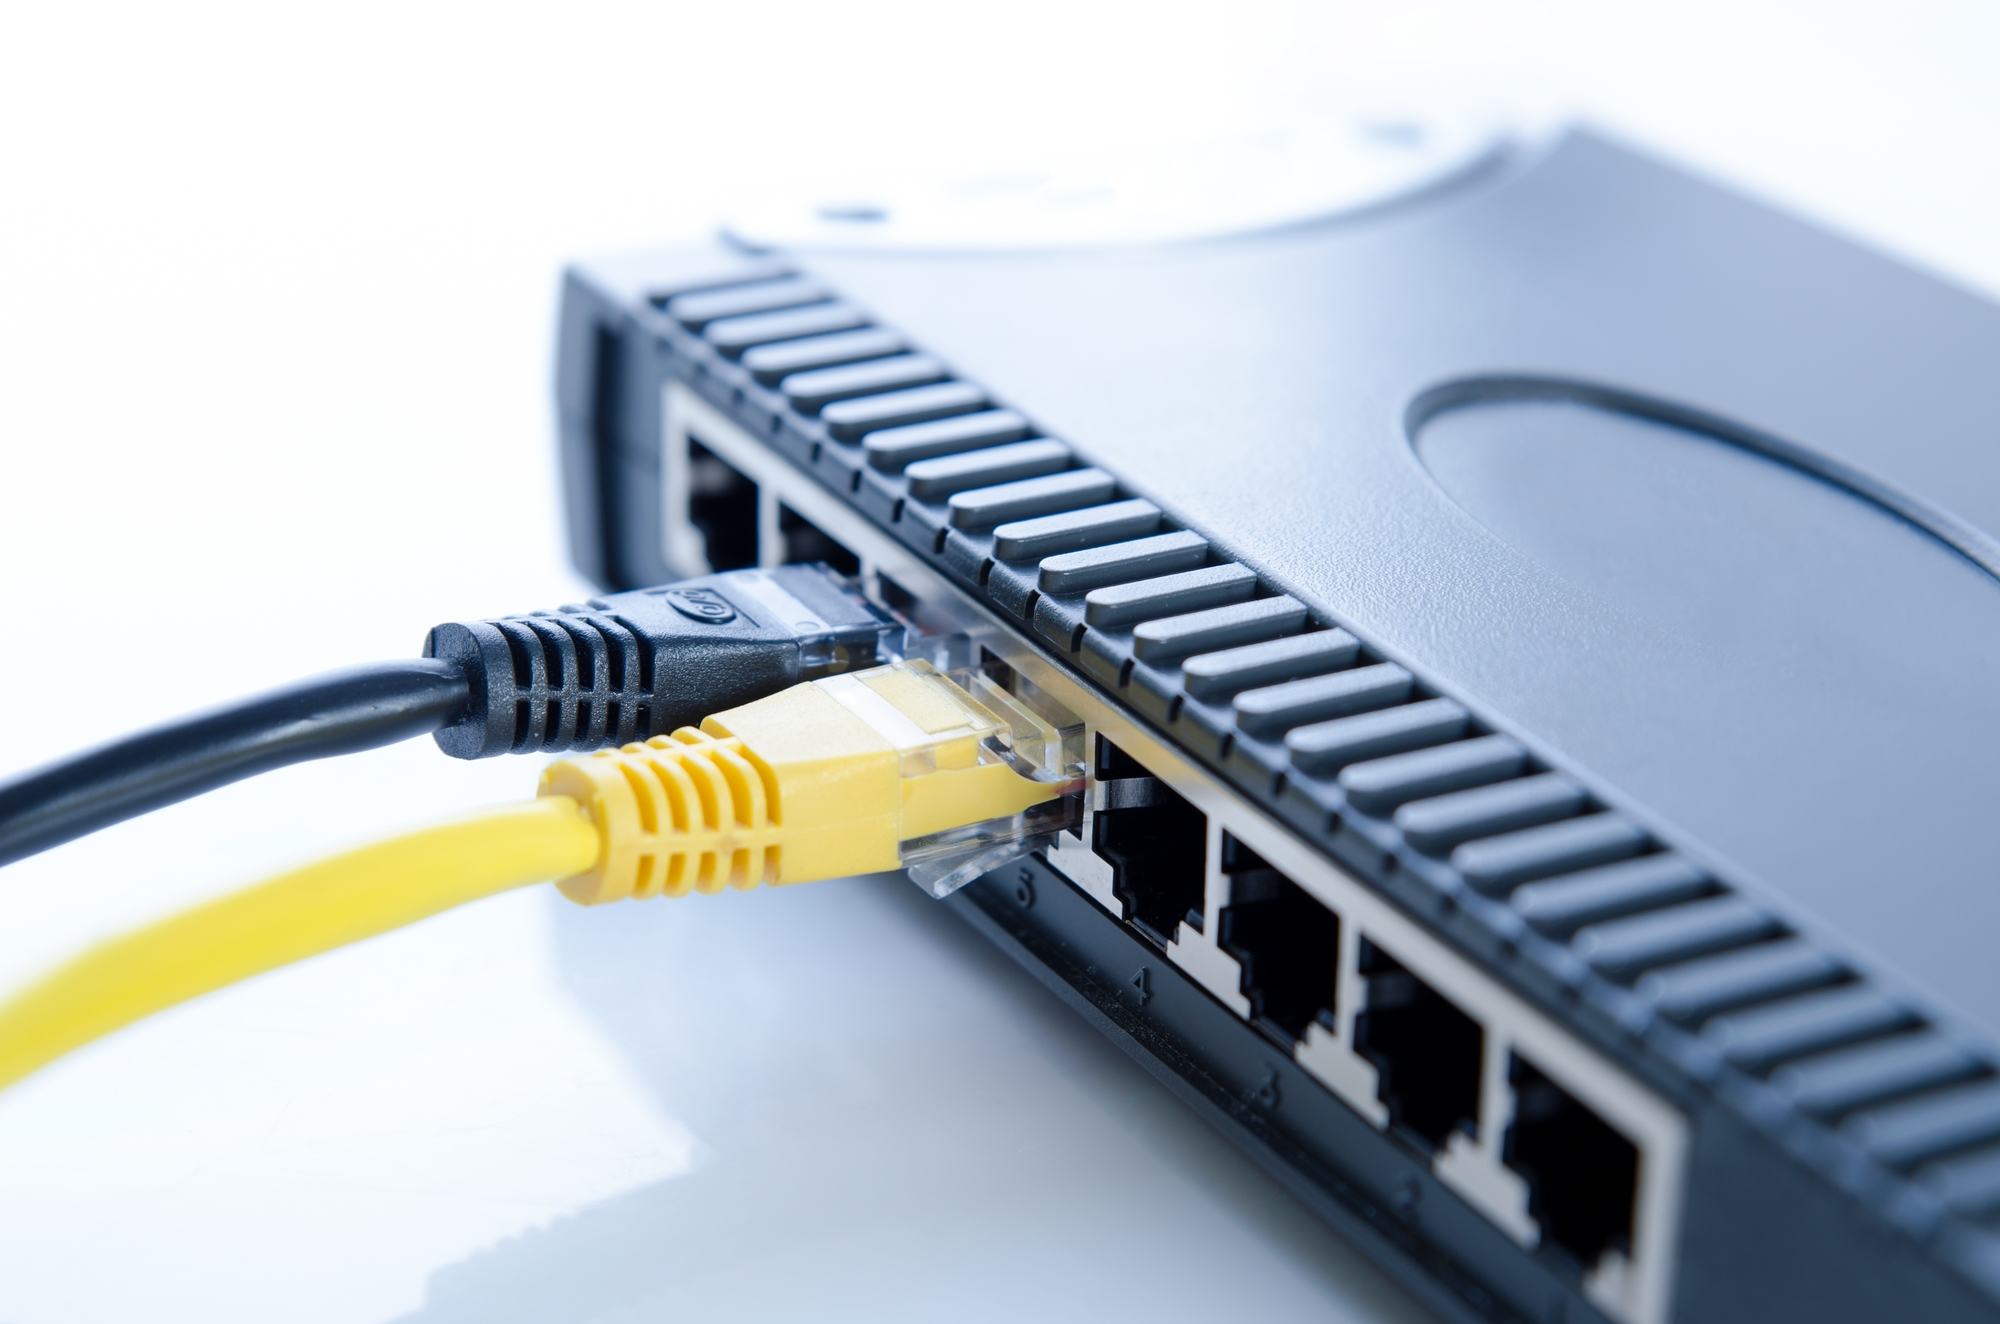 Network switch device and ethernet cables on white background